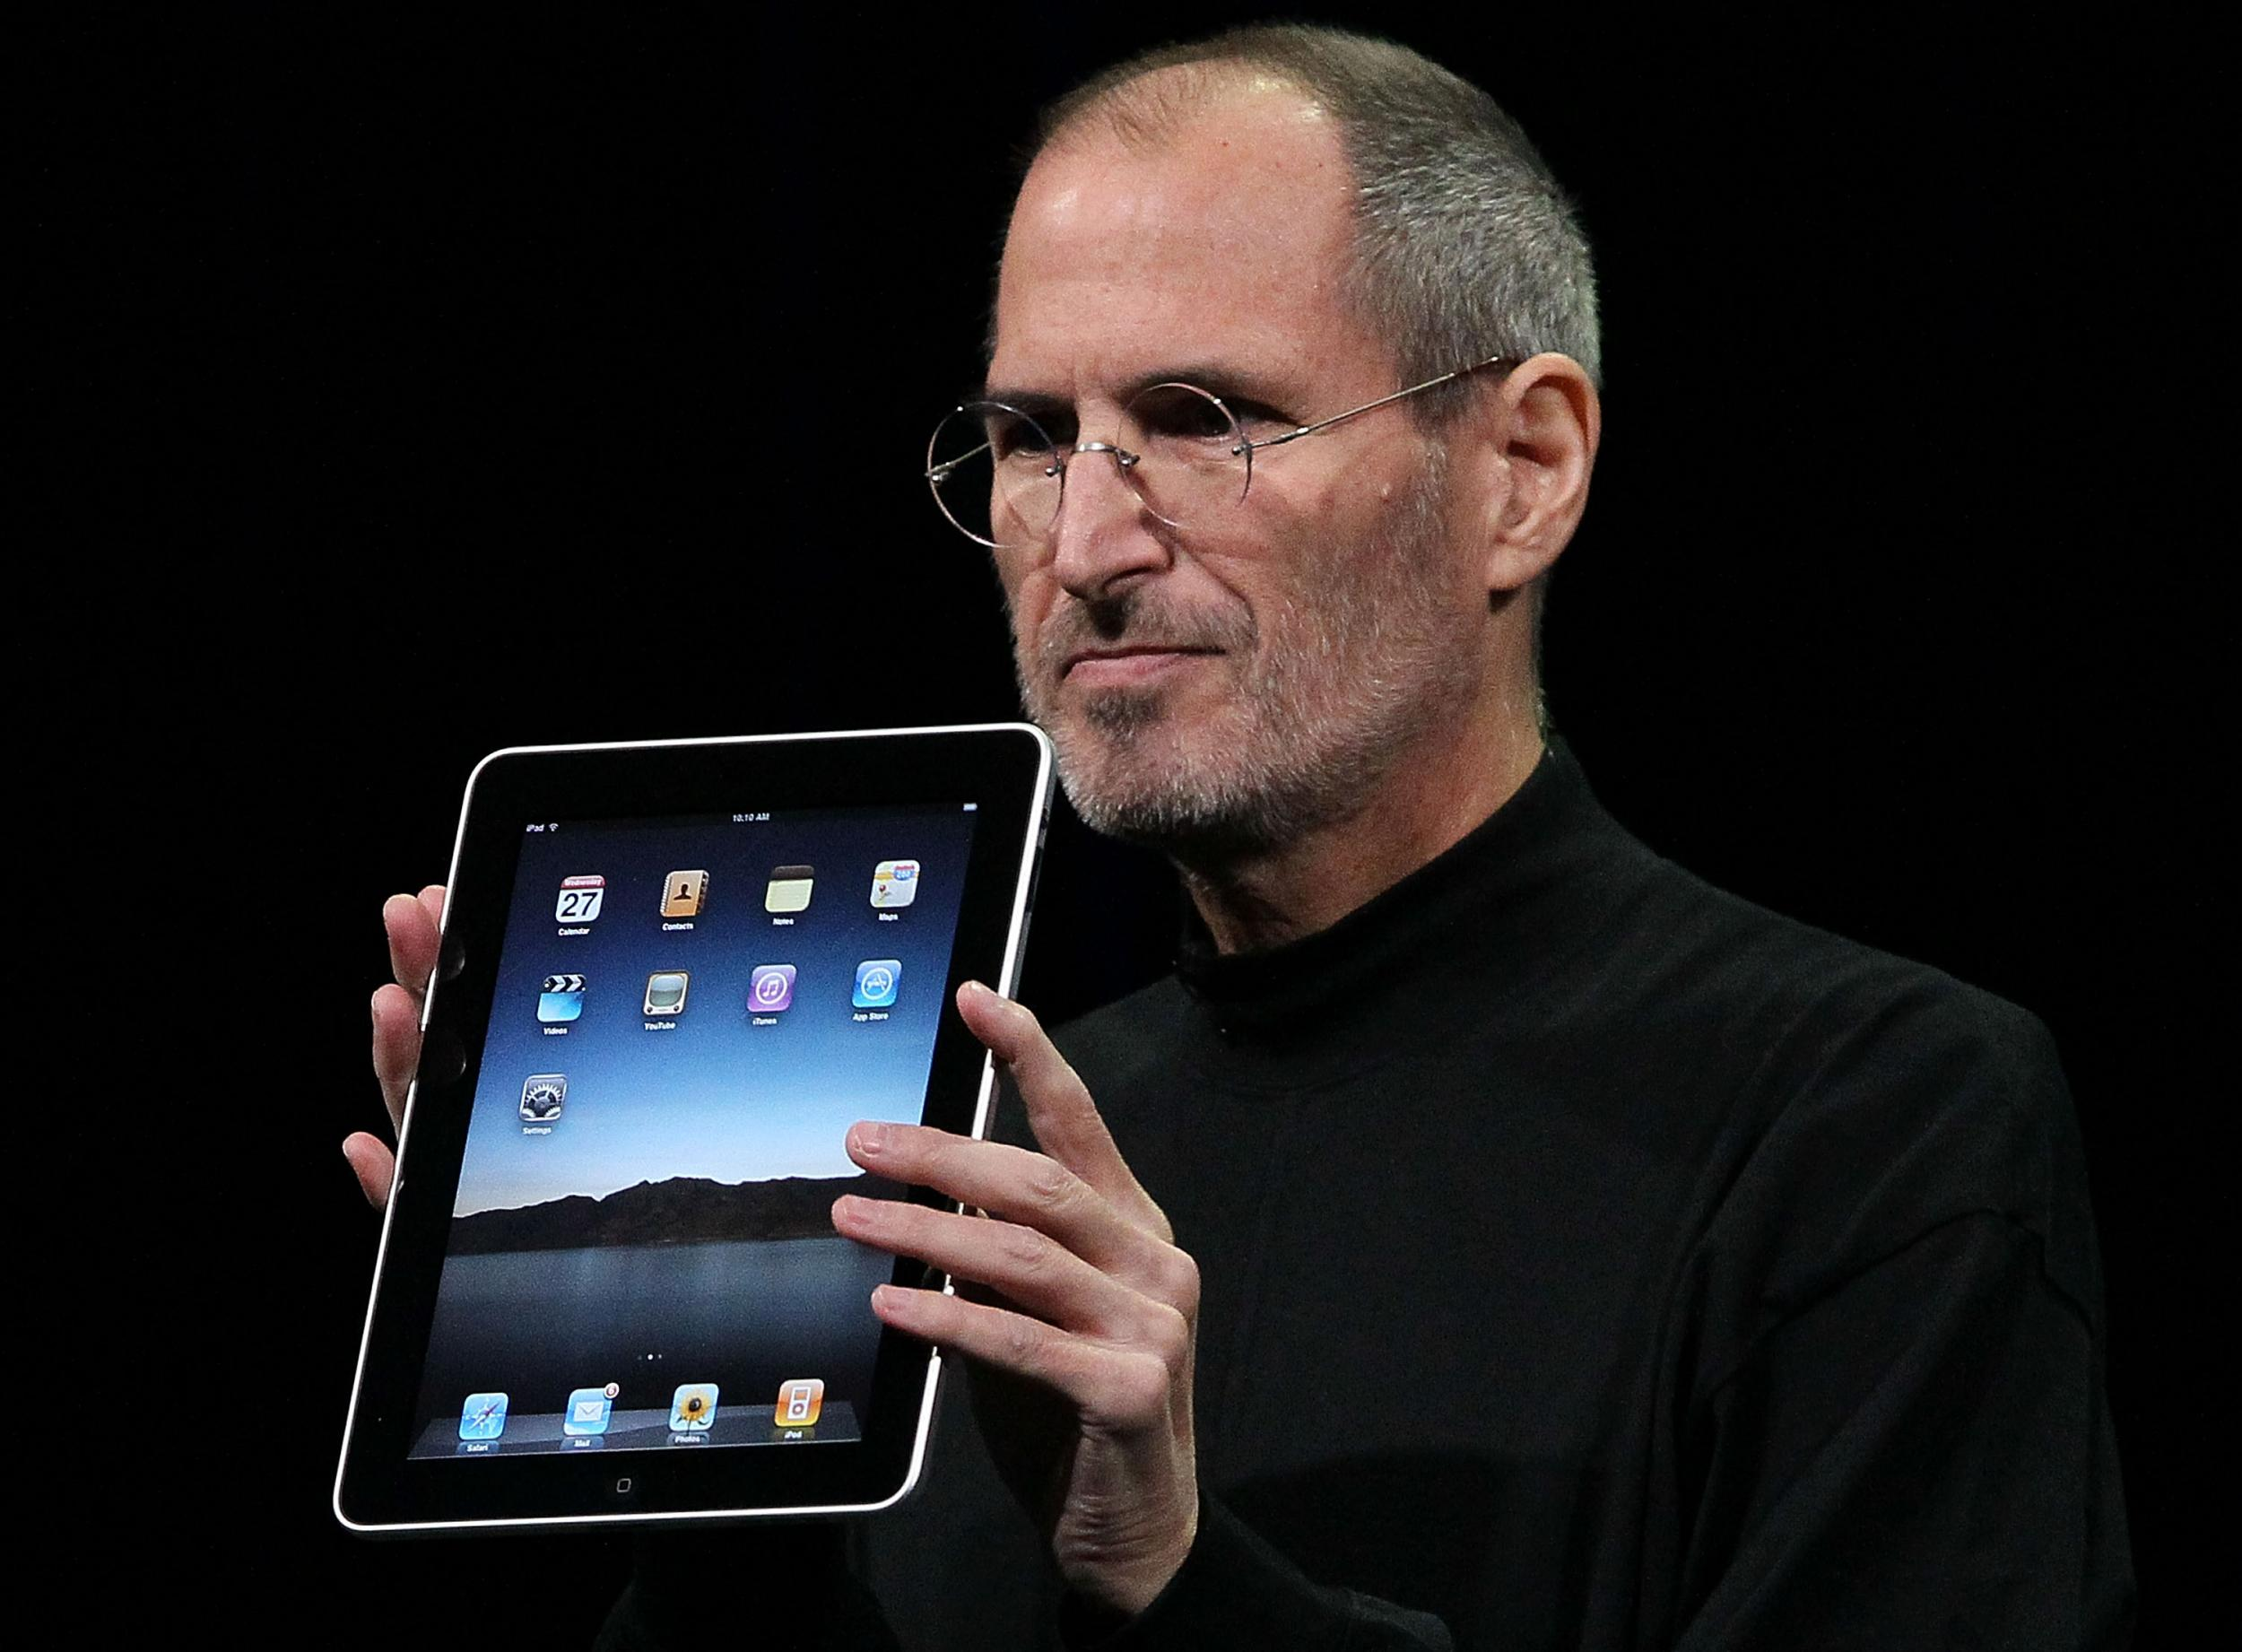 https://static.independent.co.uk/s3fs-public/thumbnails/image/2016/02/24/14/stevejobs.jpg